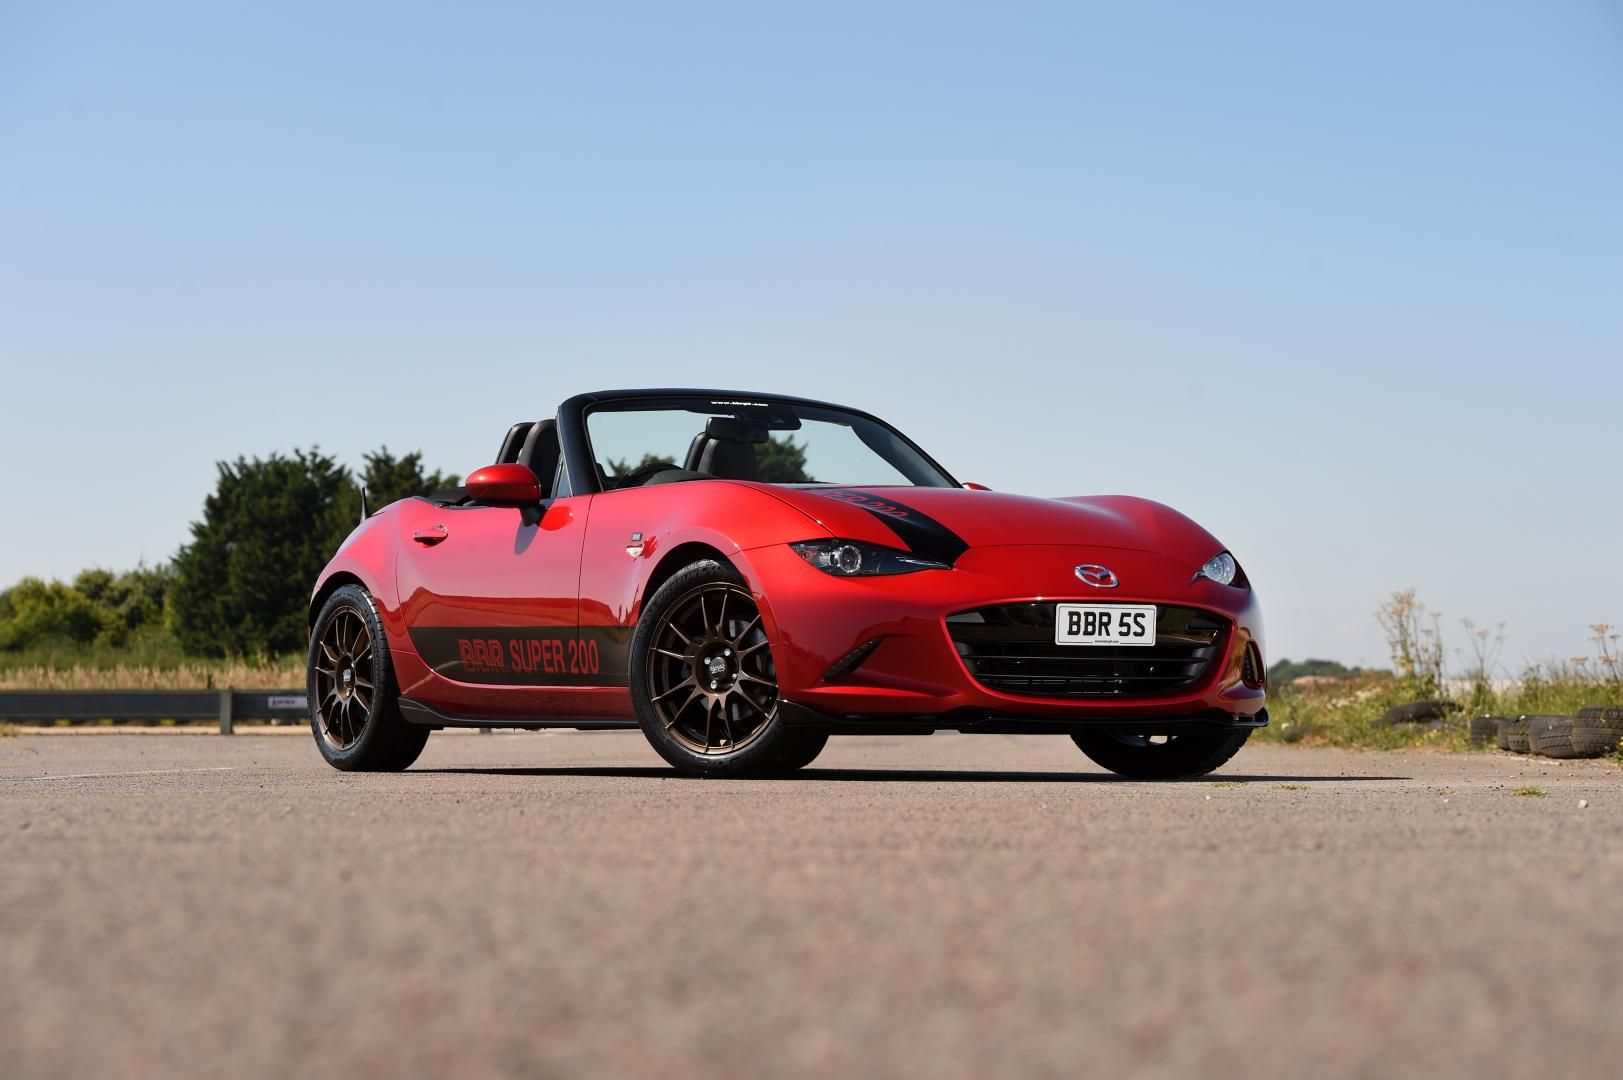 Http www carscoops com 2015 12 mazda mx 5 nd gets its first power html mazda mx 5 nd mk4 pinterest mazda